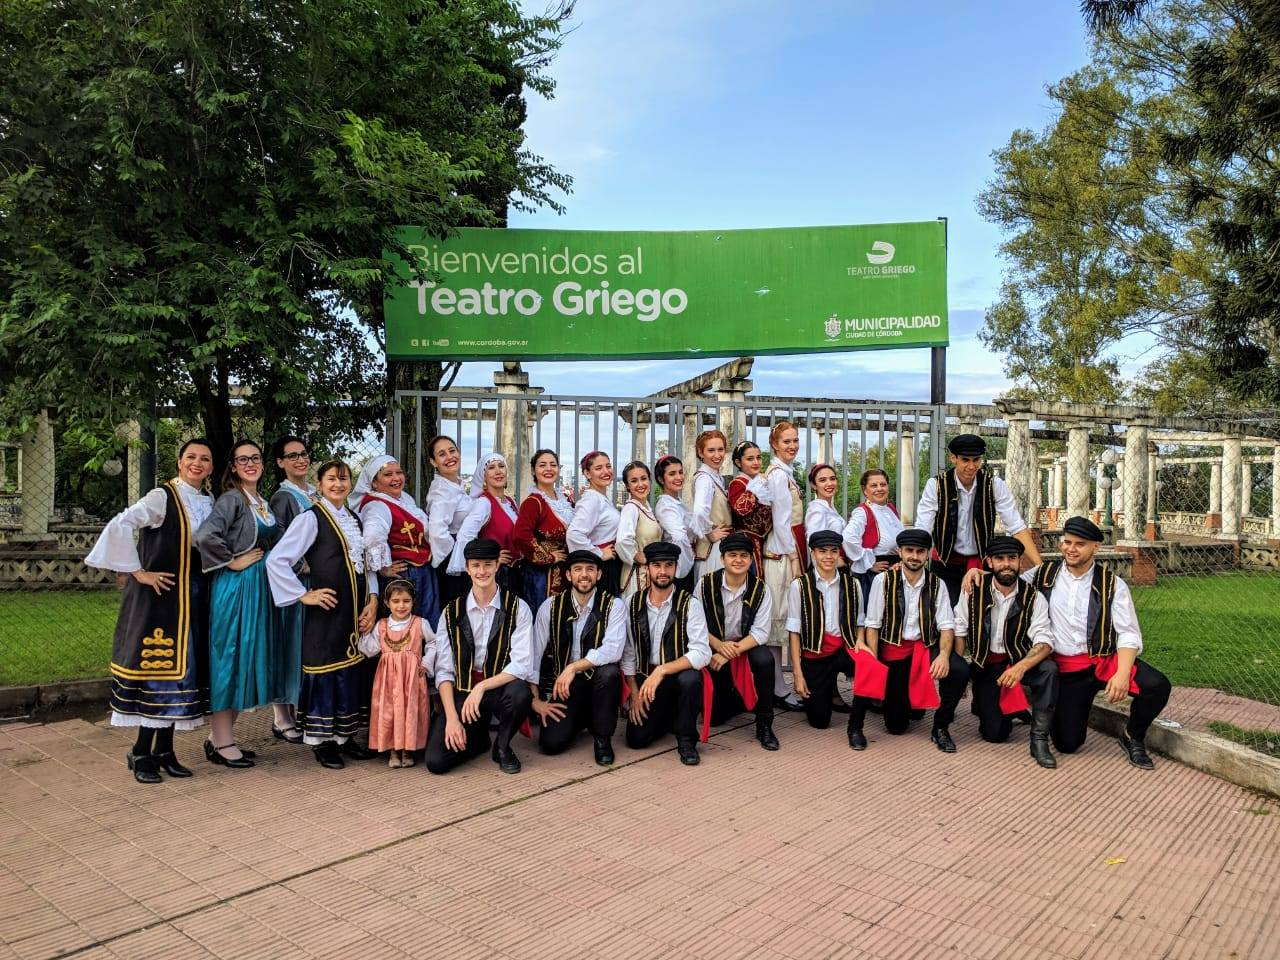 Members of the Hellenic community of Cordoba Argentina